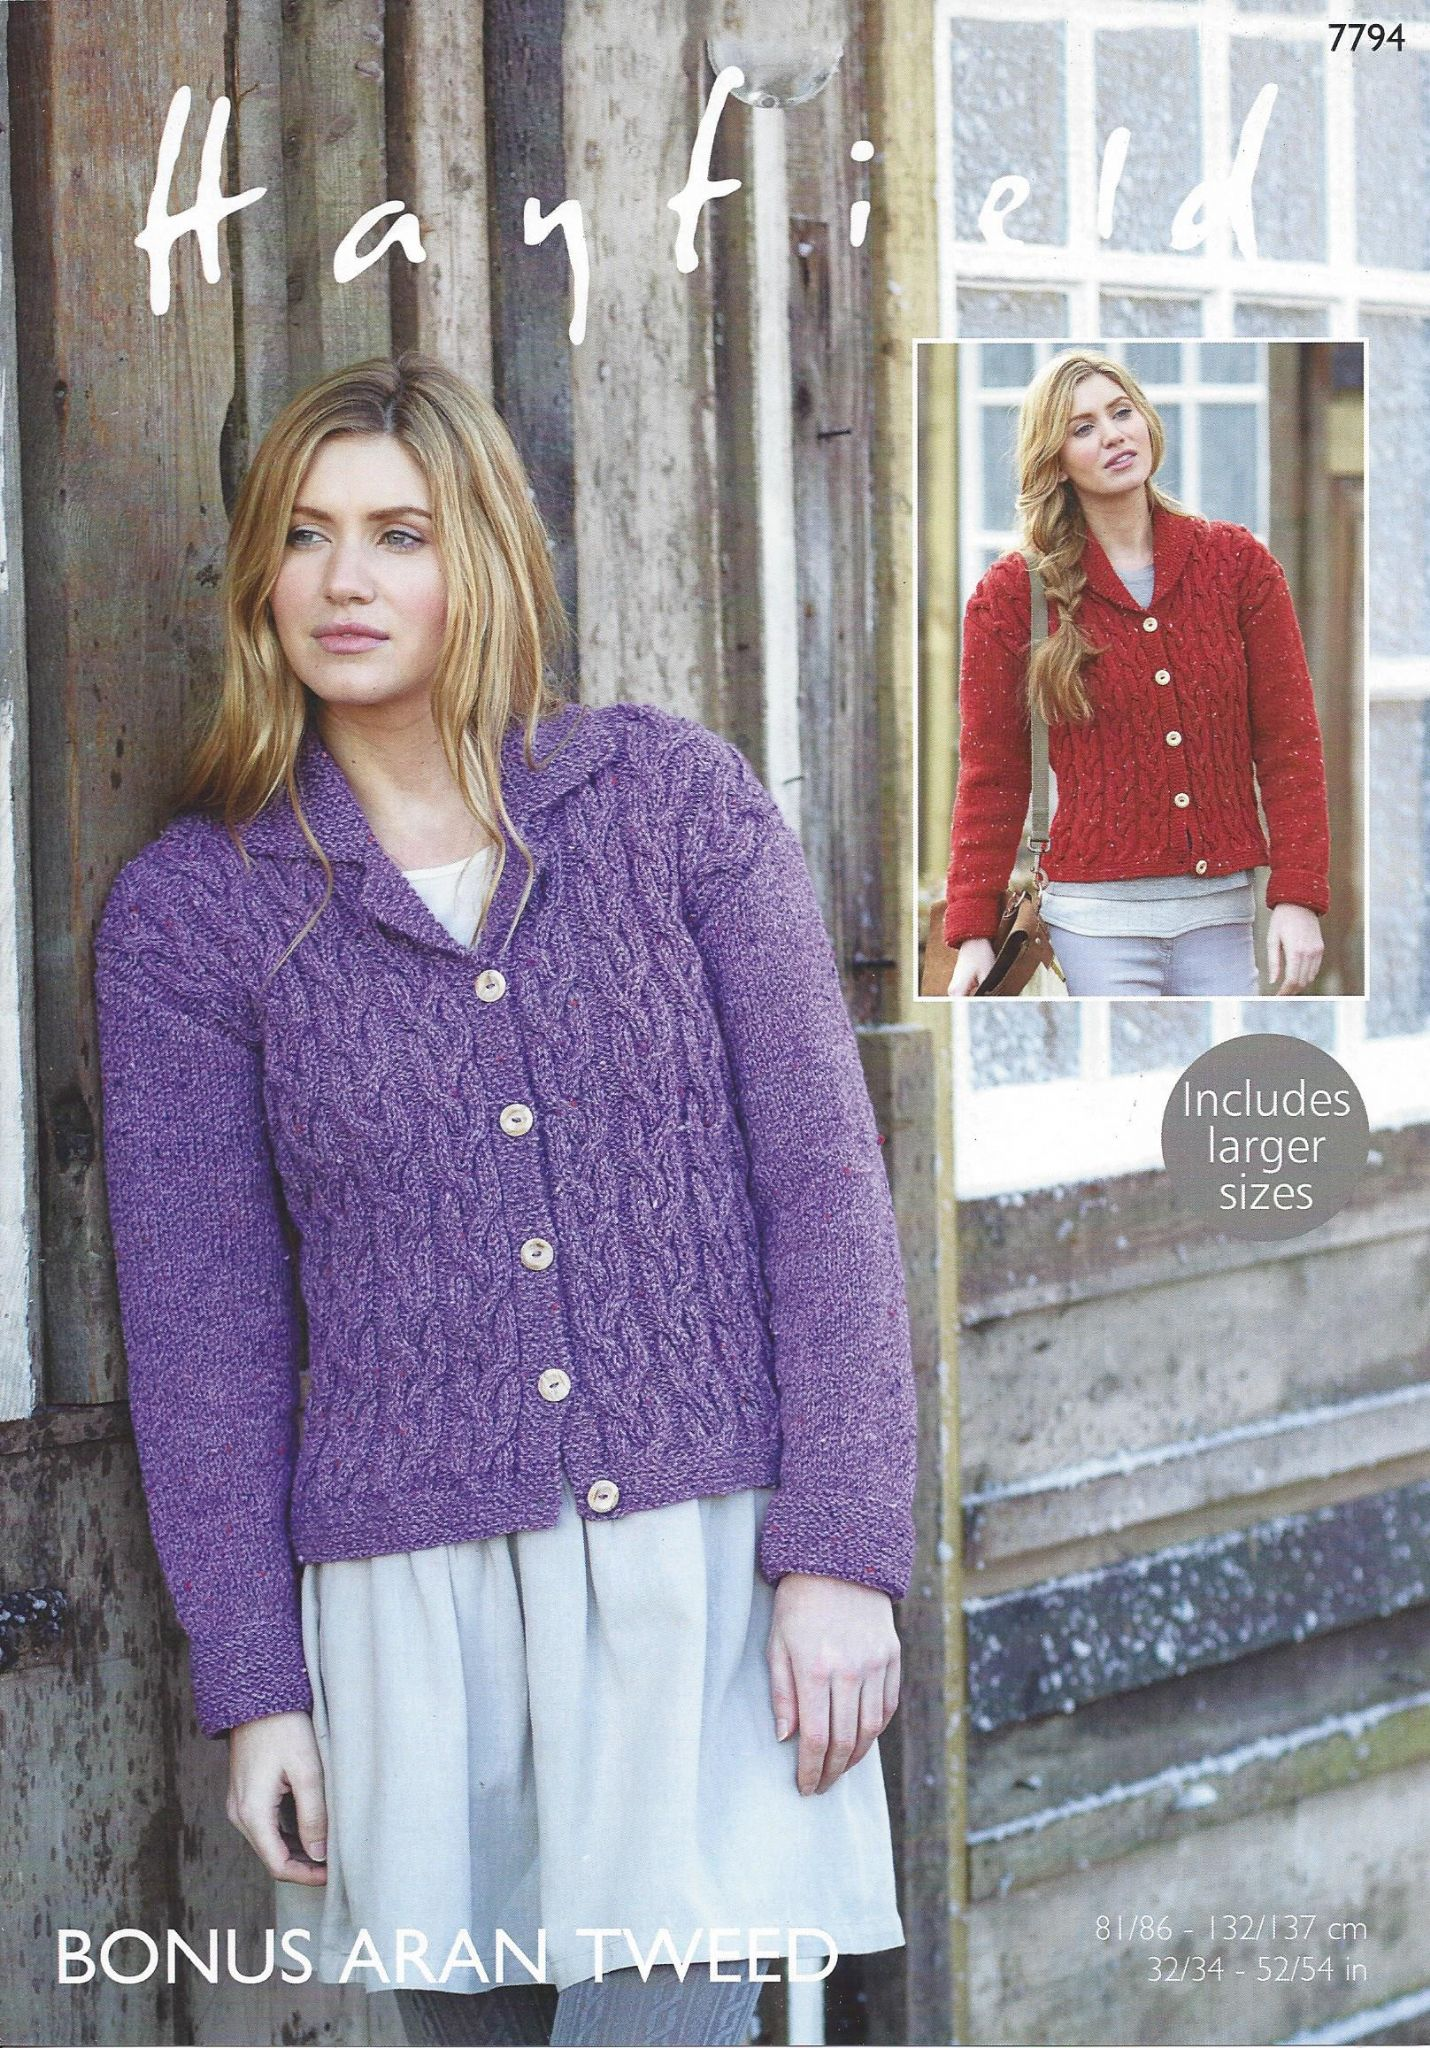 Hayfield Aran Knitting Pattern Books : Hayfield Bonus Aran Tweed - 7794 Jackets Knitting Pattern